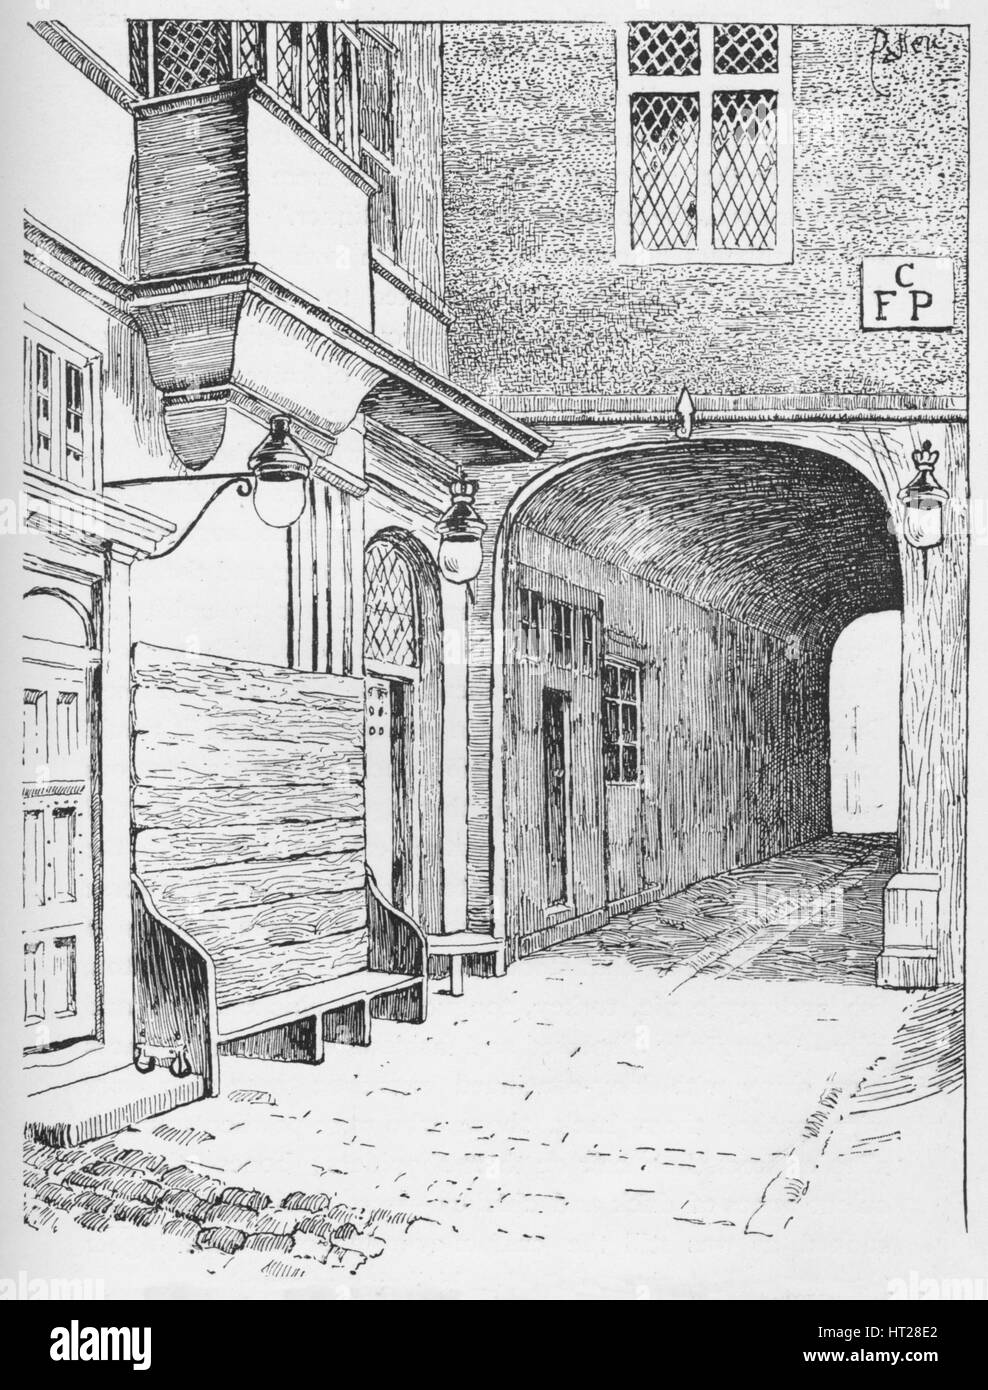 'The Entrance to Speaker's Ward as it appeared before the fire', c1897. Artist: William Patten. - Stock Image